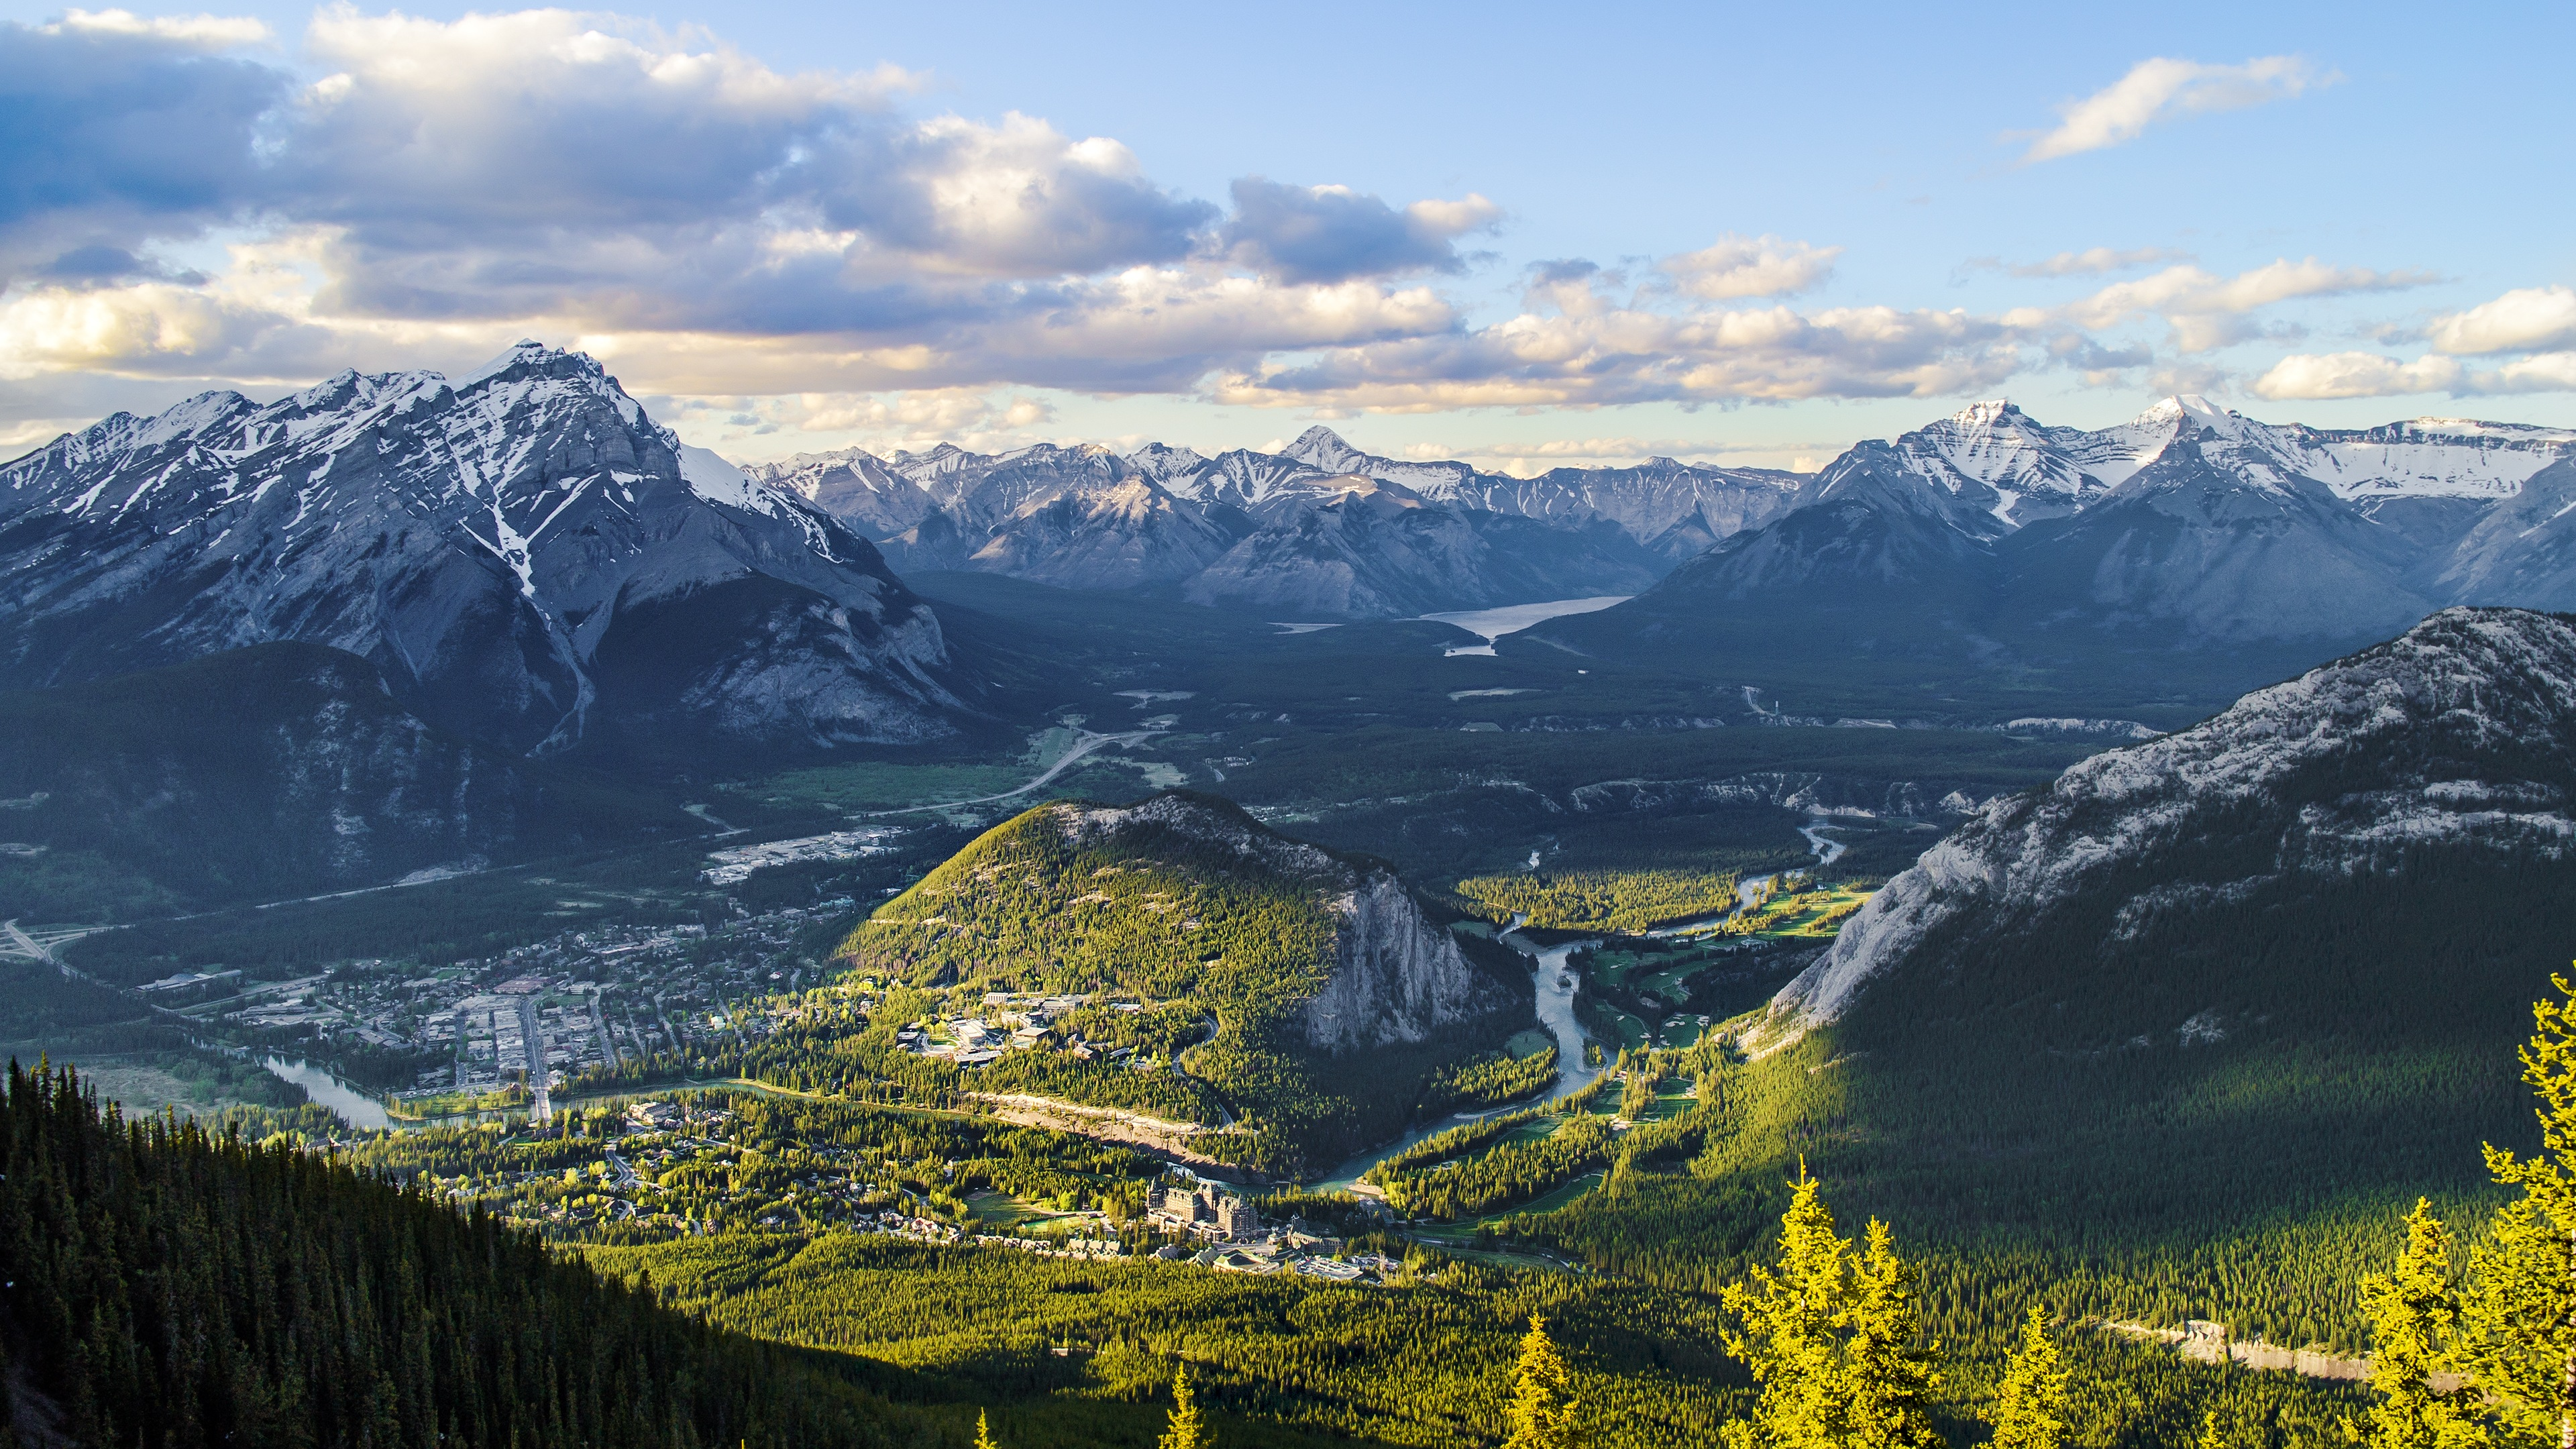 Sulphur Mountain Canada 4K Ultra HD Desktop Wallpaper